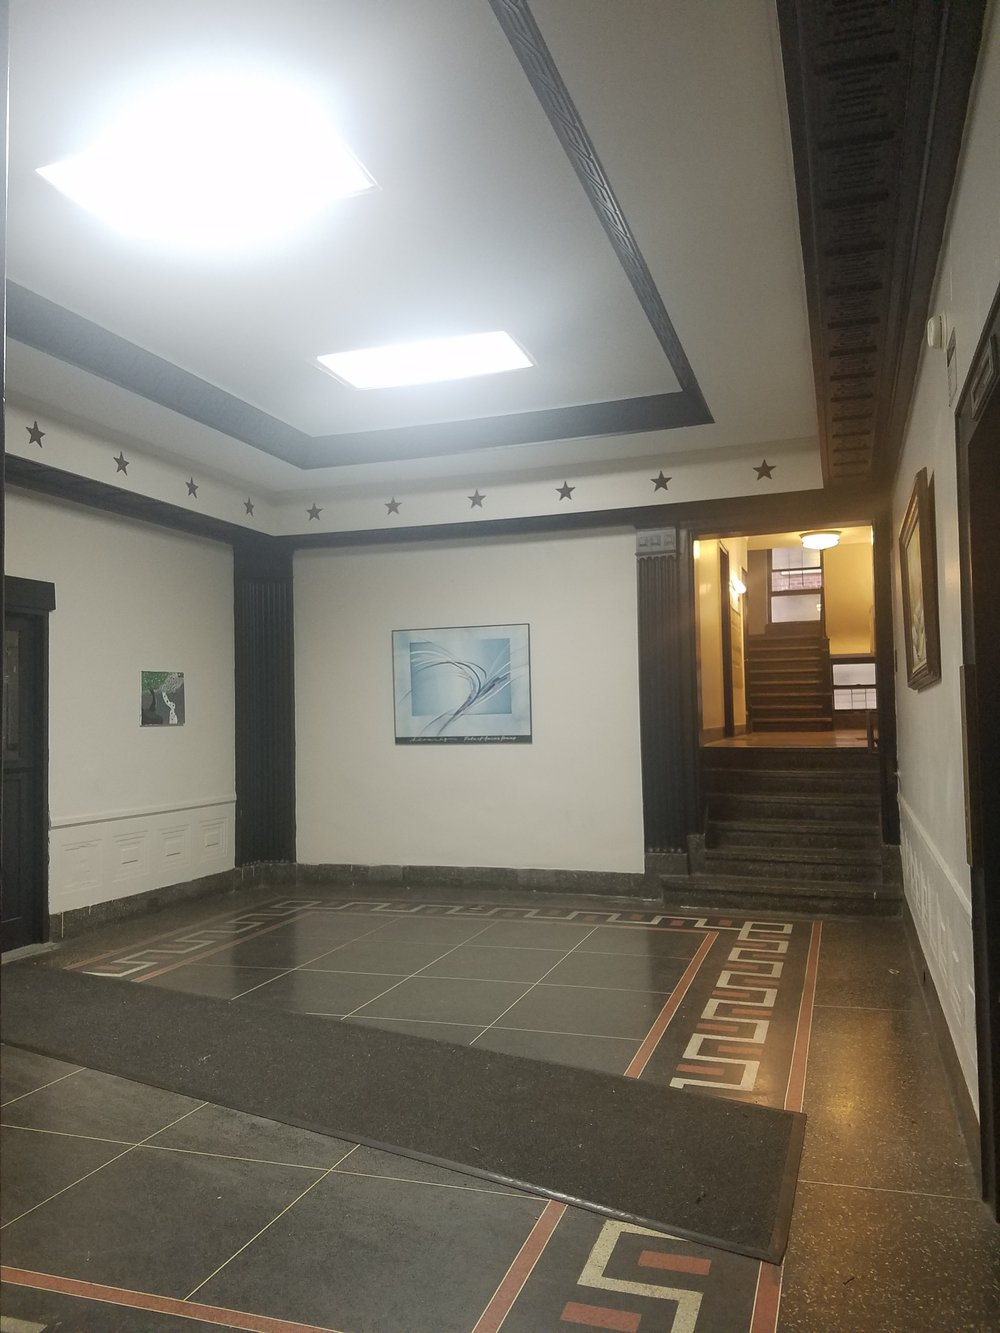 485 West 187th St Lobby.jpg